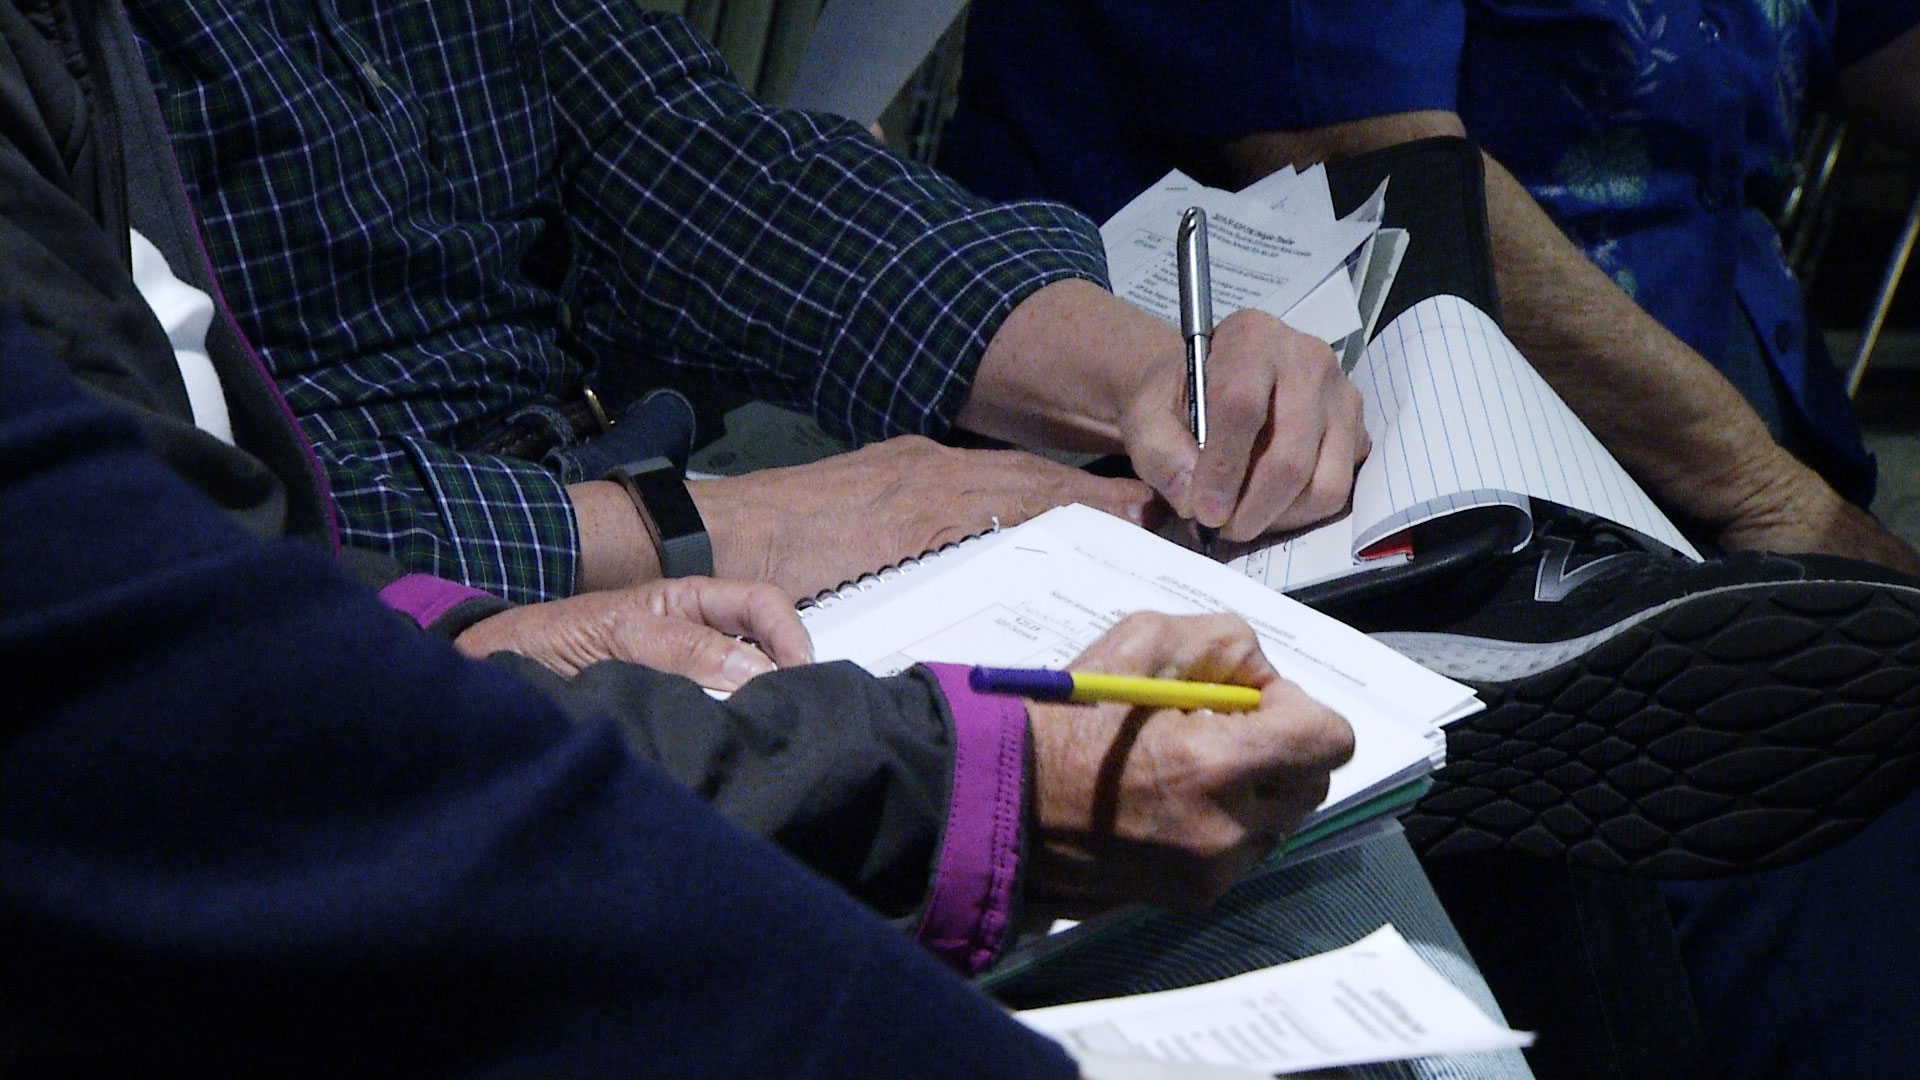 Attendees take notes during a workshop hosted by the Pima County Democratic Party about how to become an Arizona delegate at the 2020 Democratic National Convention. The workshop was held at the Nanini Library on November 13, 2019.